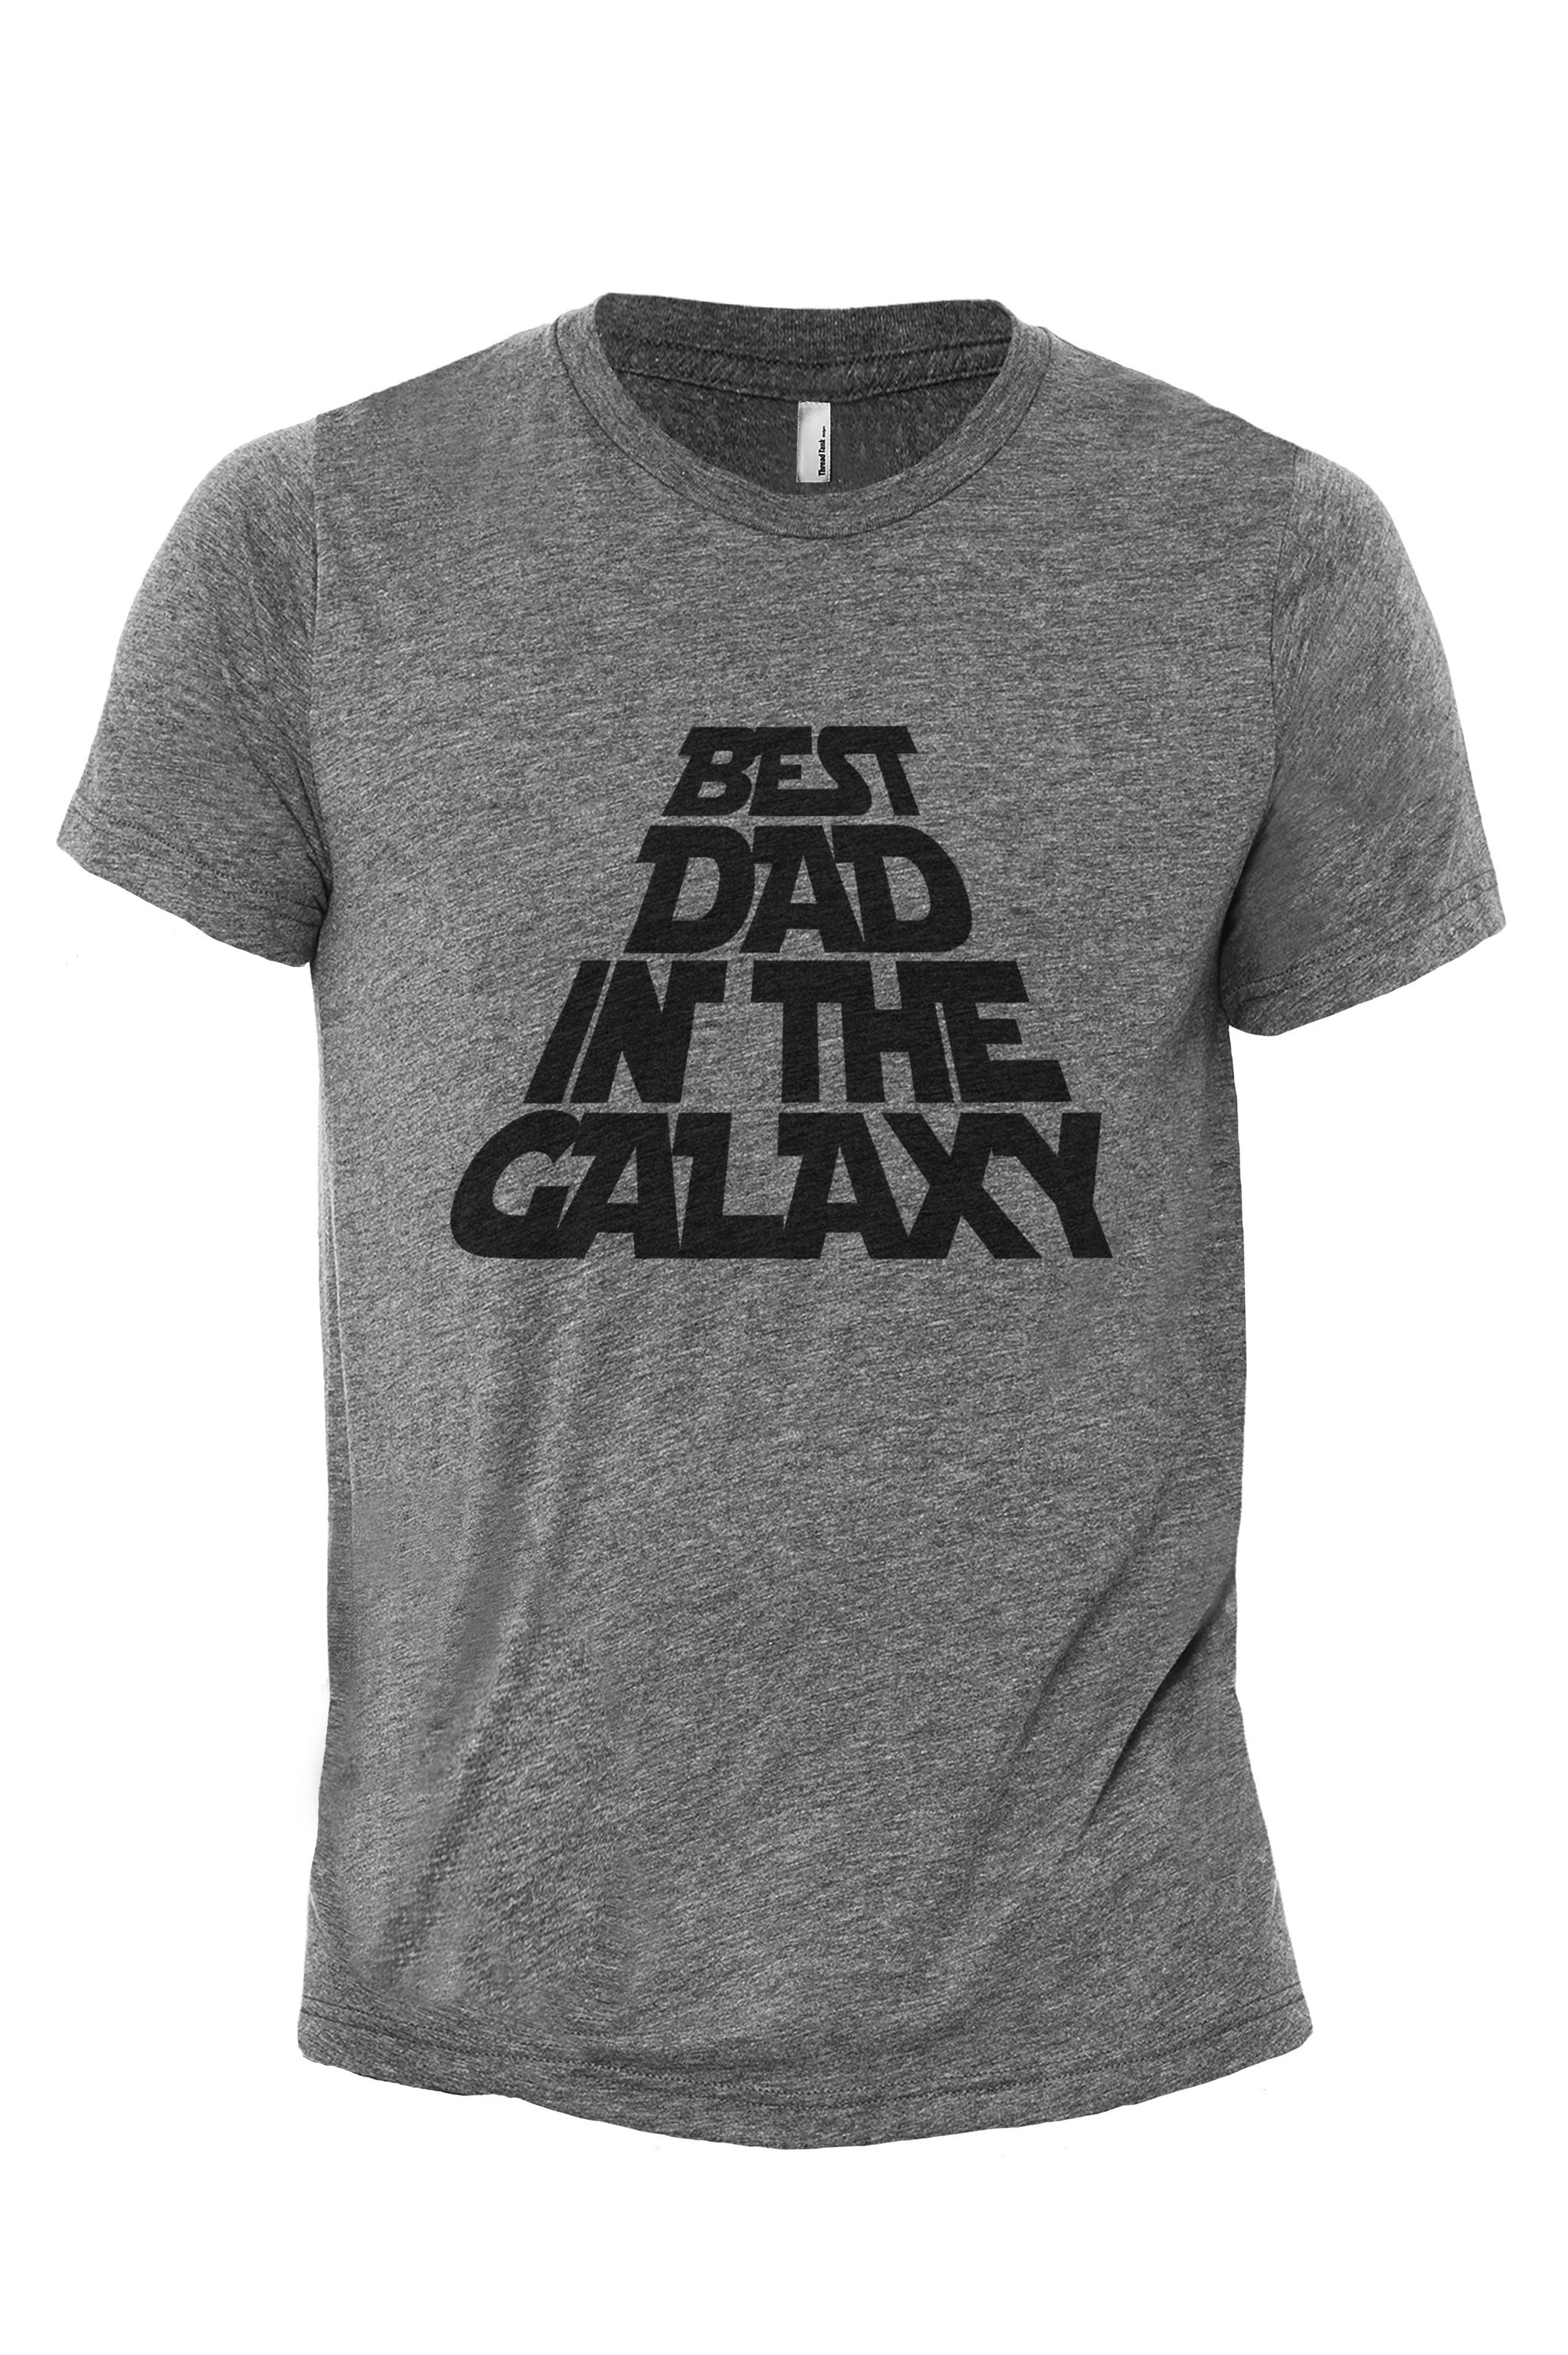 The Best Dad in the Galaxy Heather Grey Printed Graphic Men's Crew T-Shirt Tee